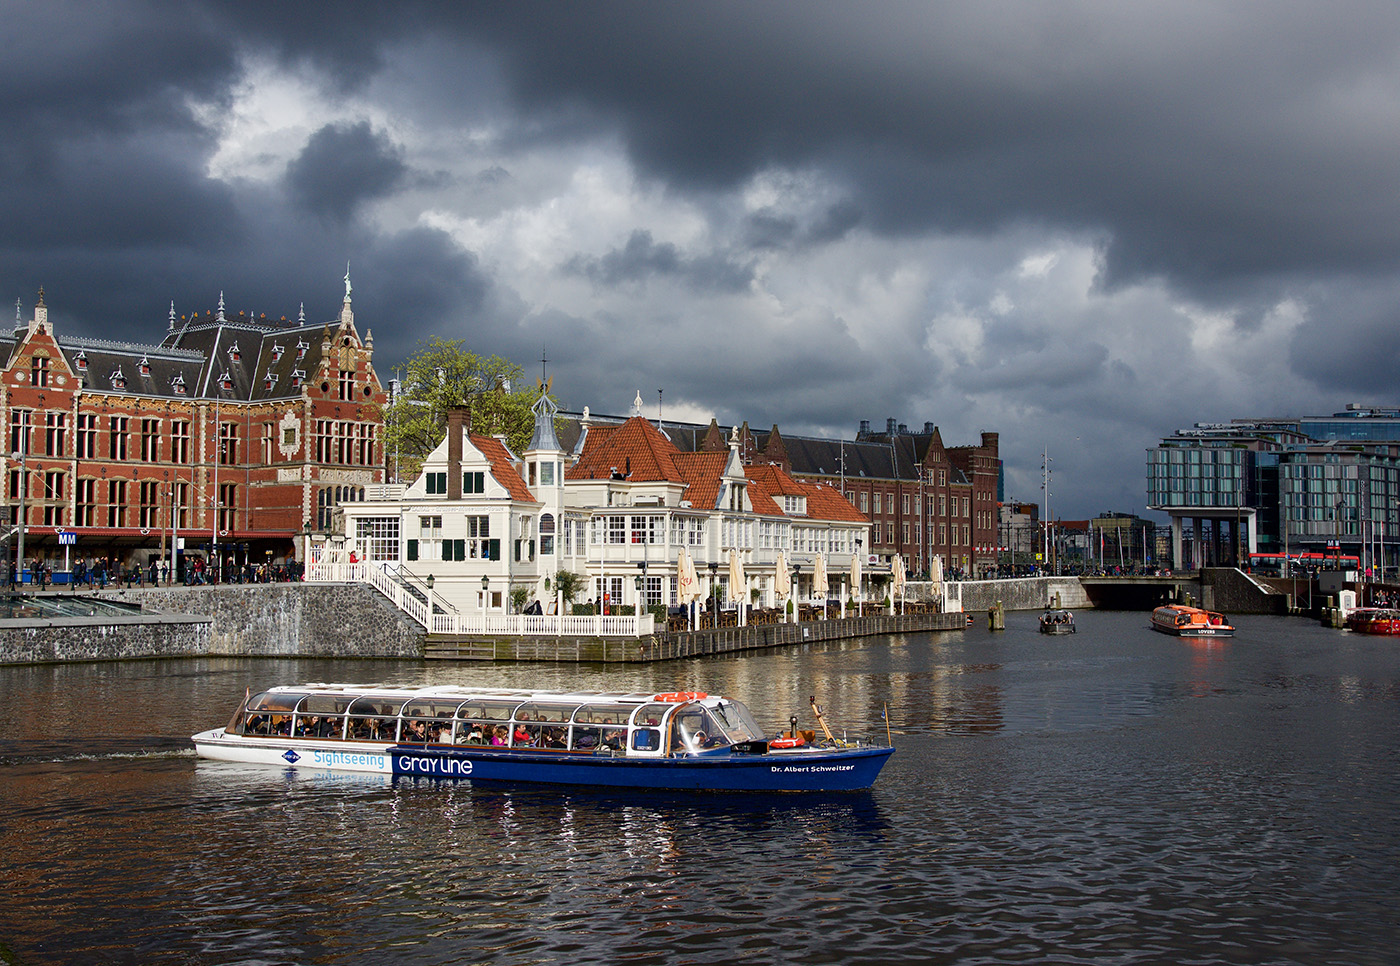 Stormy Skies over Amsterdam